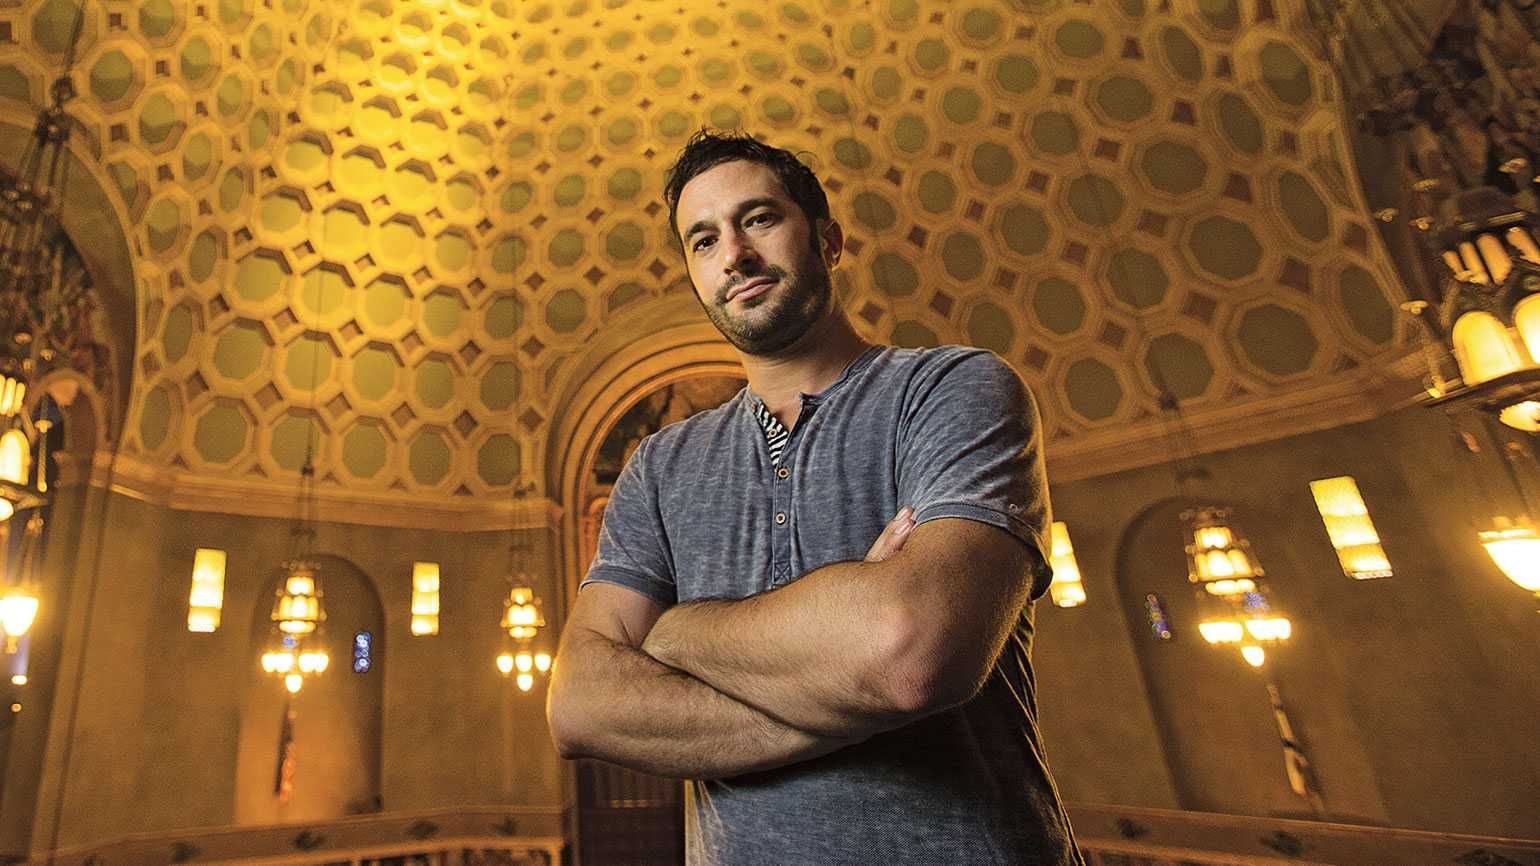 Aaron Wolf in the newly renovated Wilshire Boulevard Temple